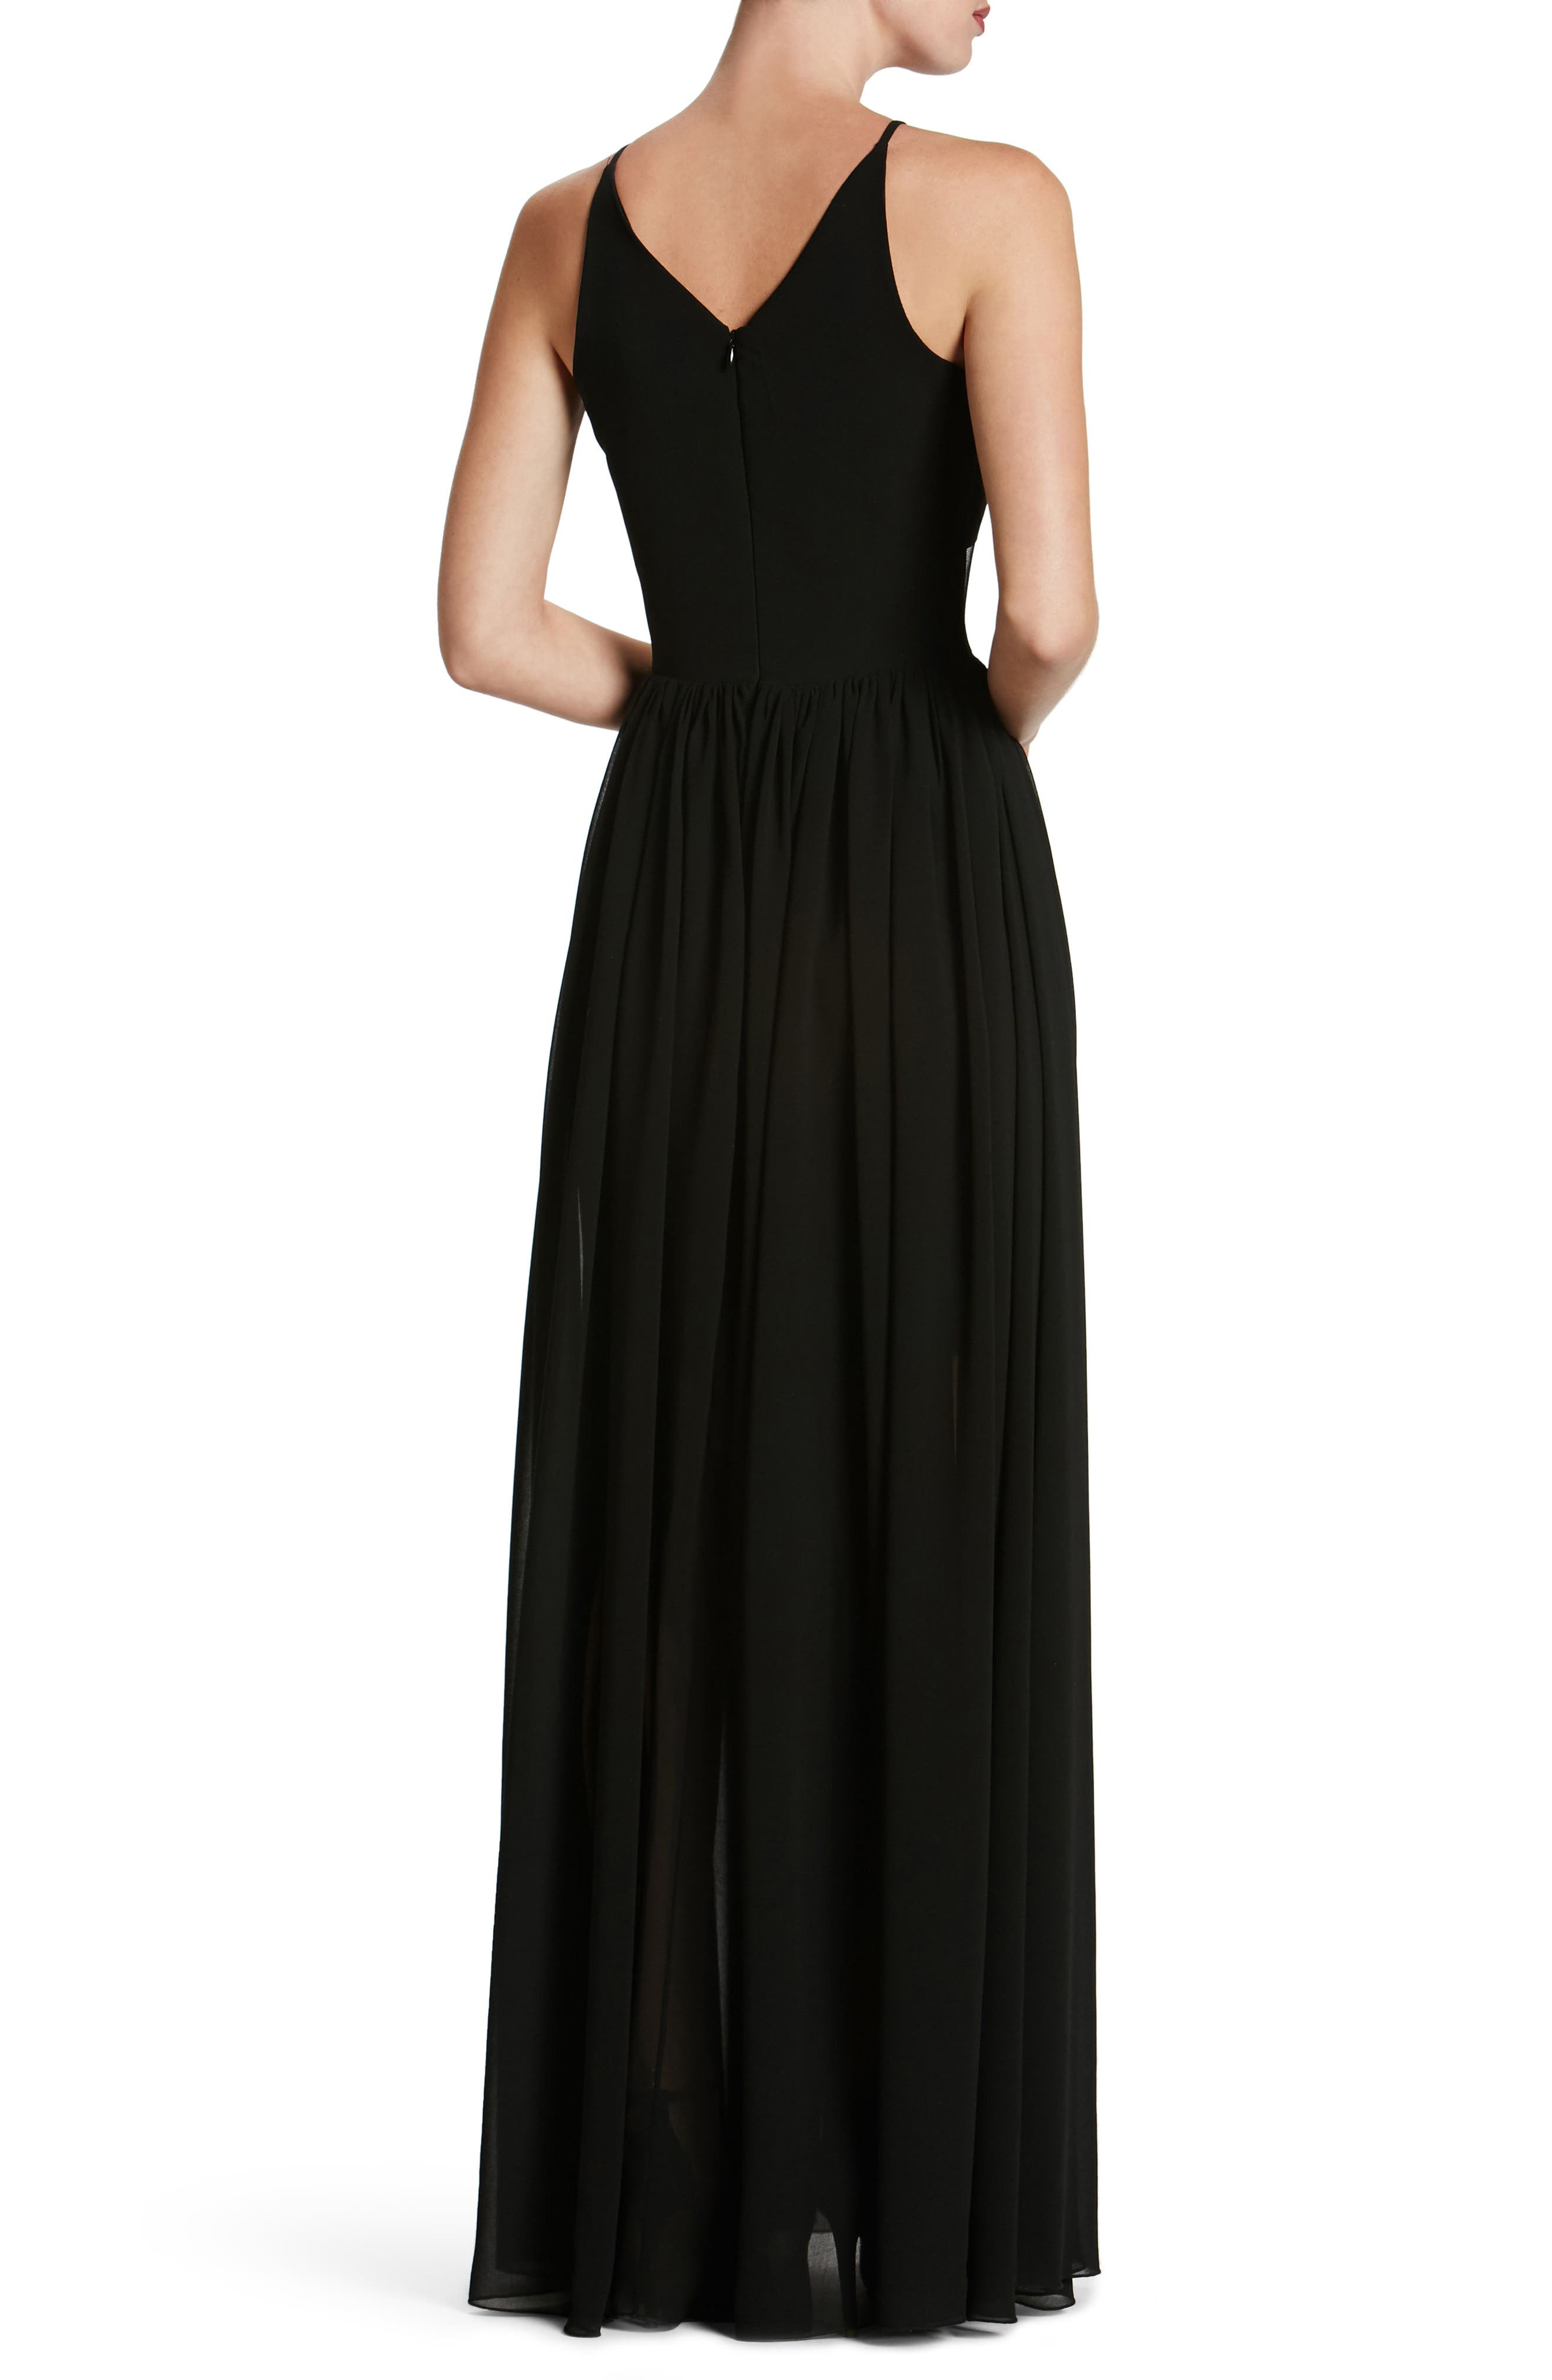 Patricia Illusion Gown,                             Alternate thumbnail 2, color,                             Black